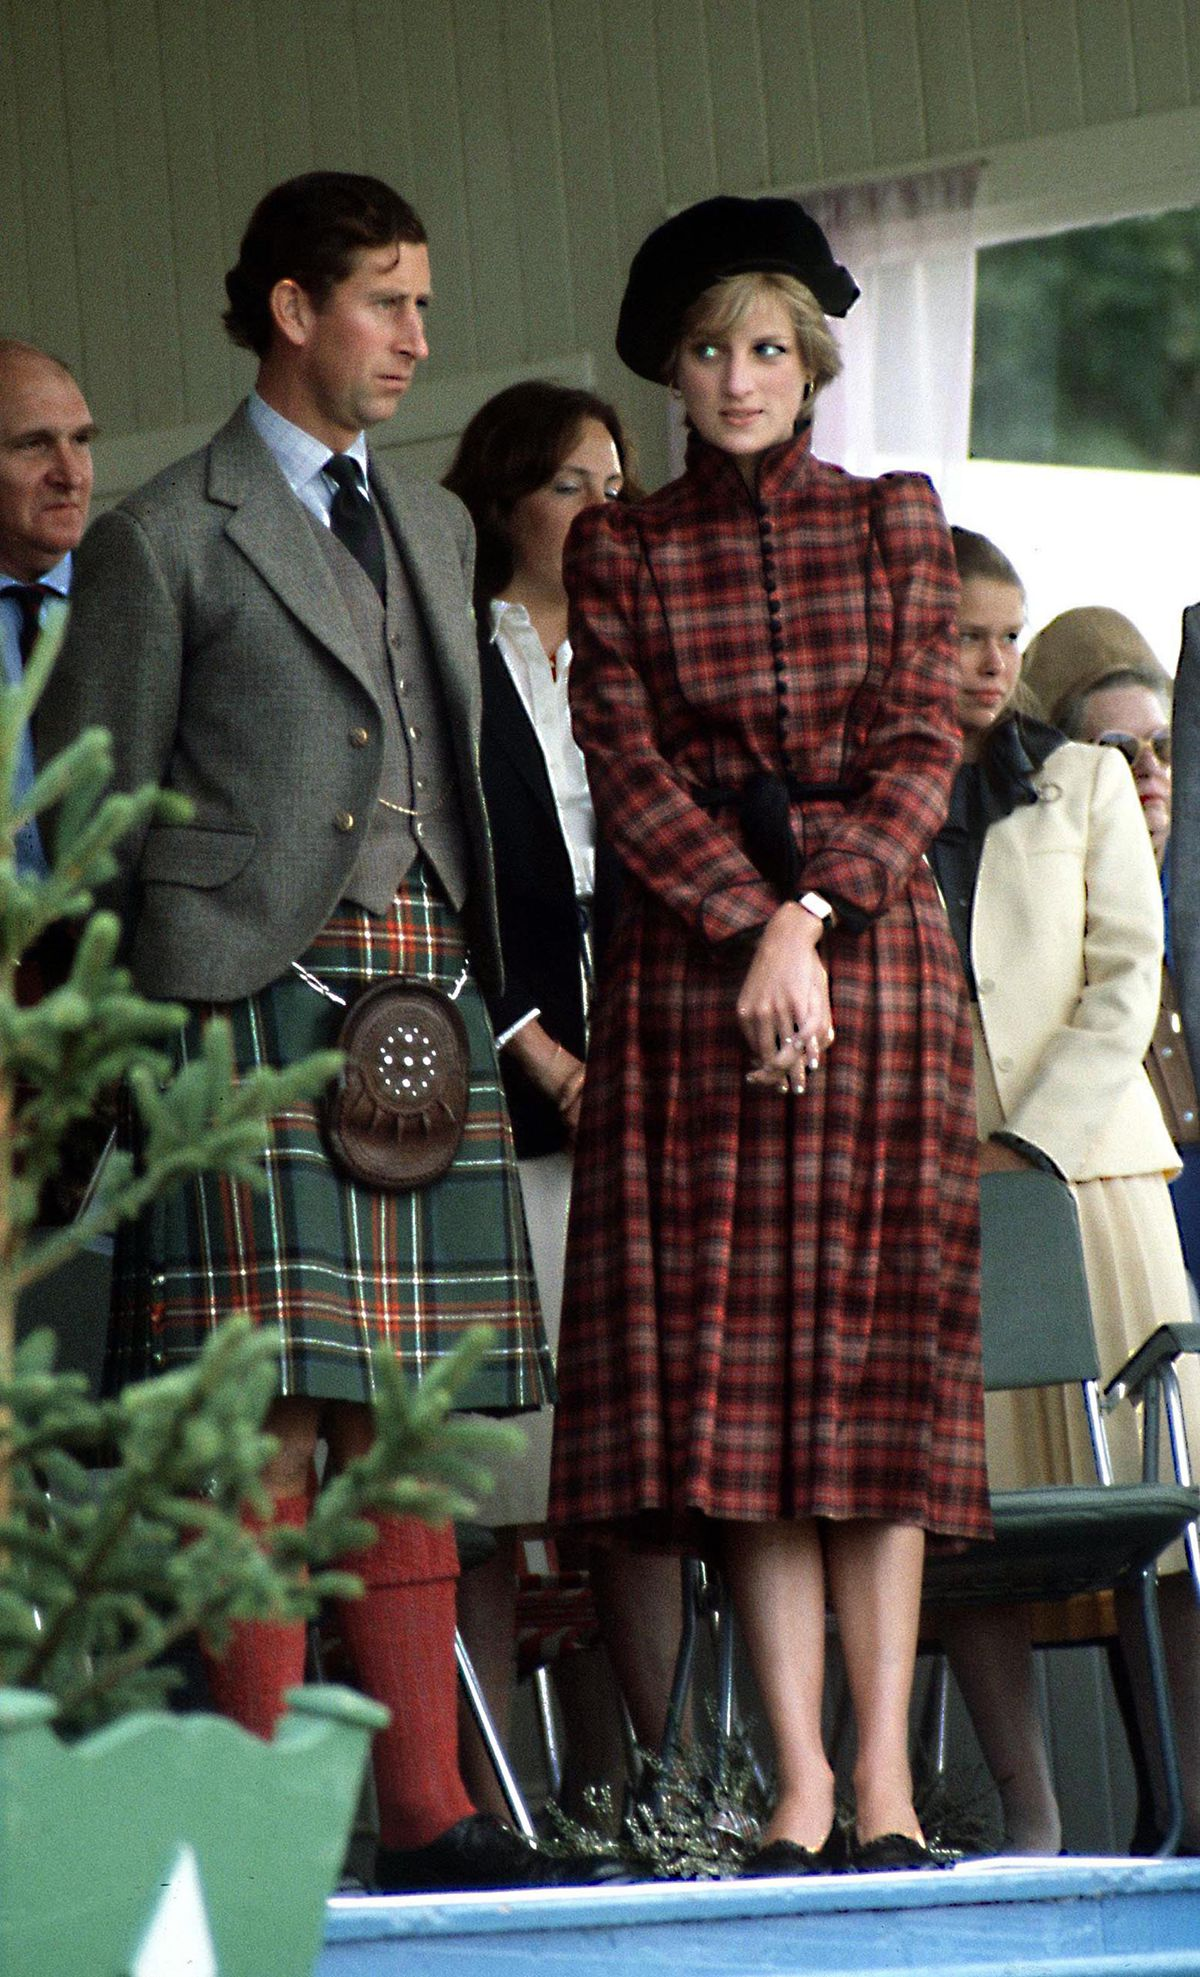 bec0e738482 Princess Diana at the Braemar Highland Games in Scotland in September 1981.  Terry Fincher Princess Diana Archive Getty Images